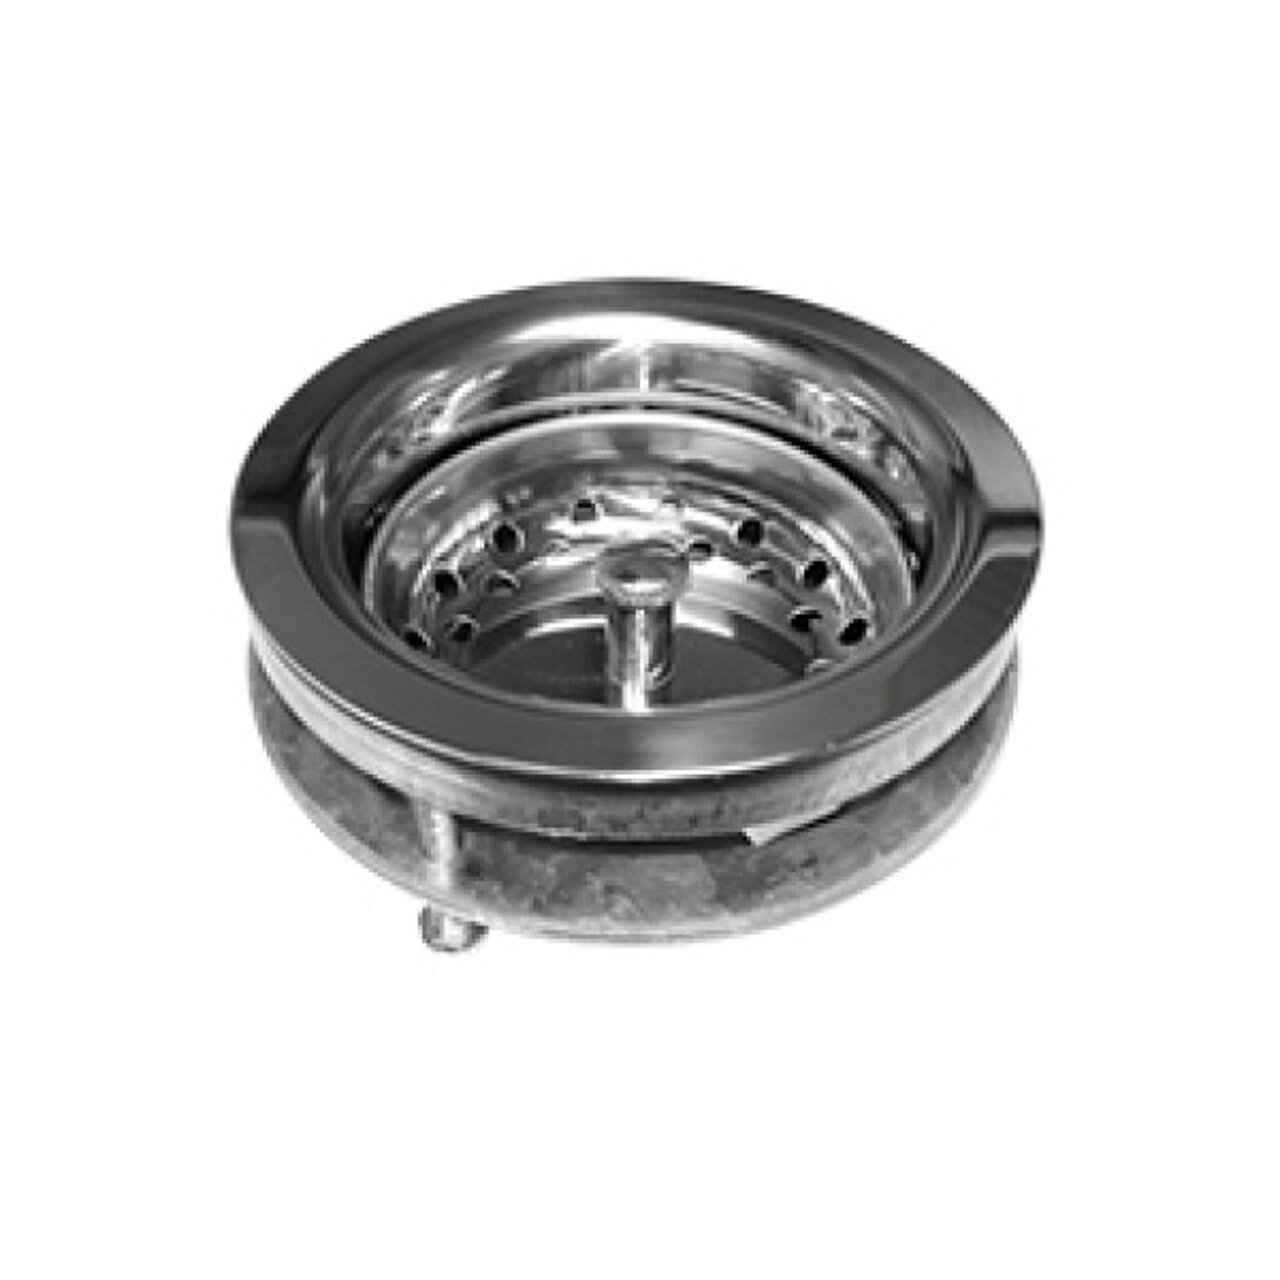 Pasco 21907 Ez-On Basket Strainer Polished Stainless Steel